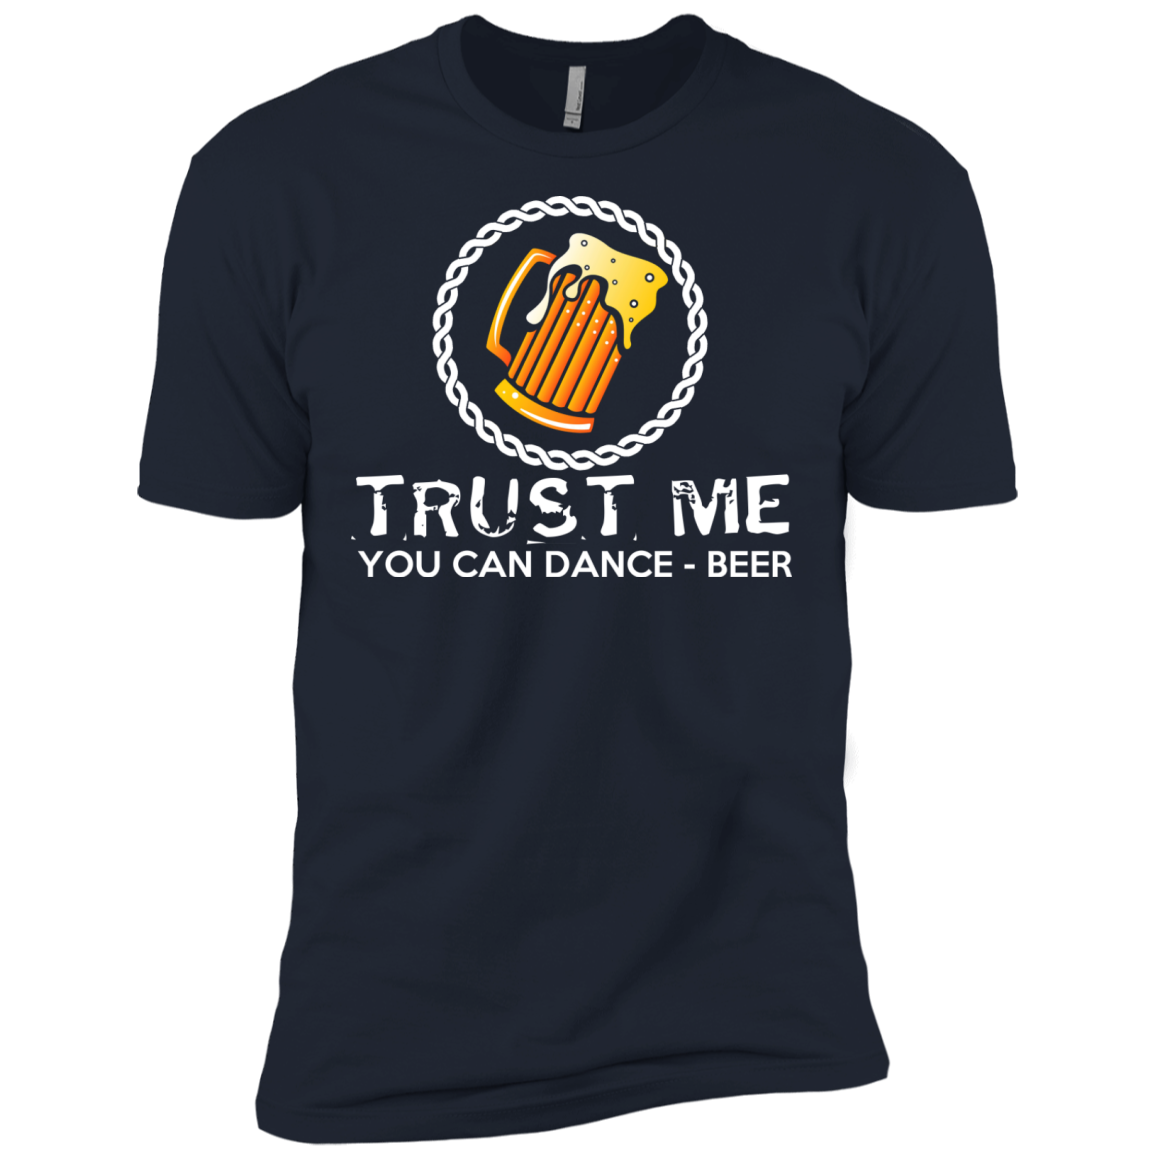 Beer Trust Me You Can Dance Funny T Shirt - The Sun Cat